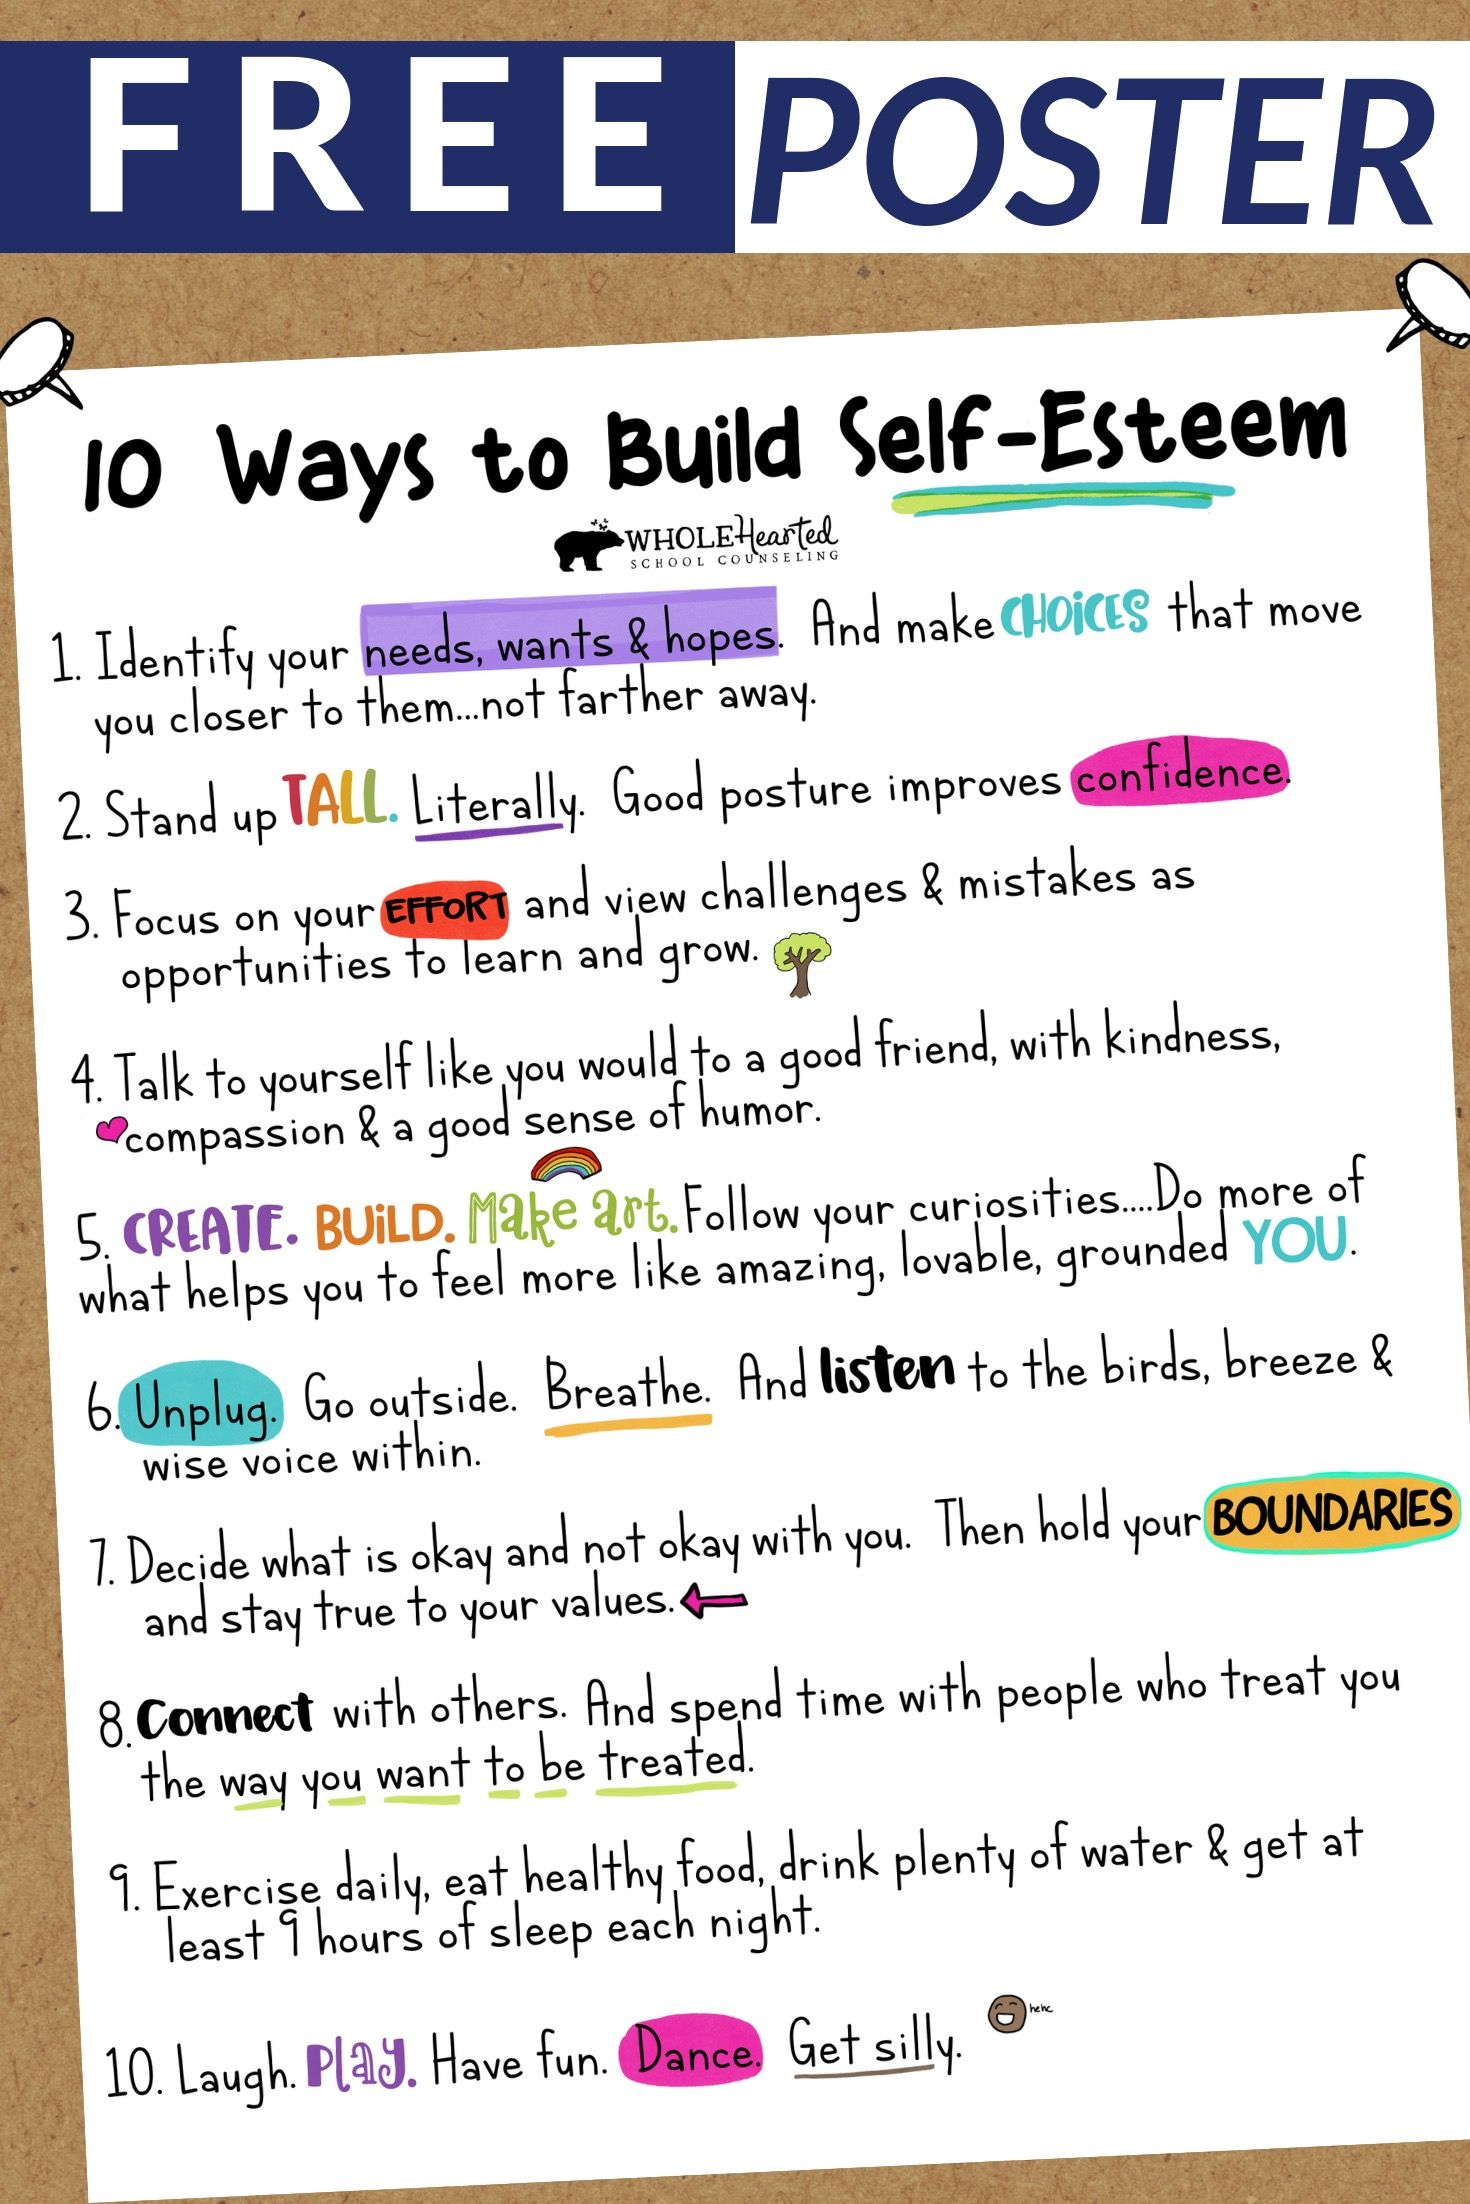 Free Social Emotional Learning Poster 10 Ways To Build